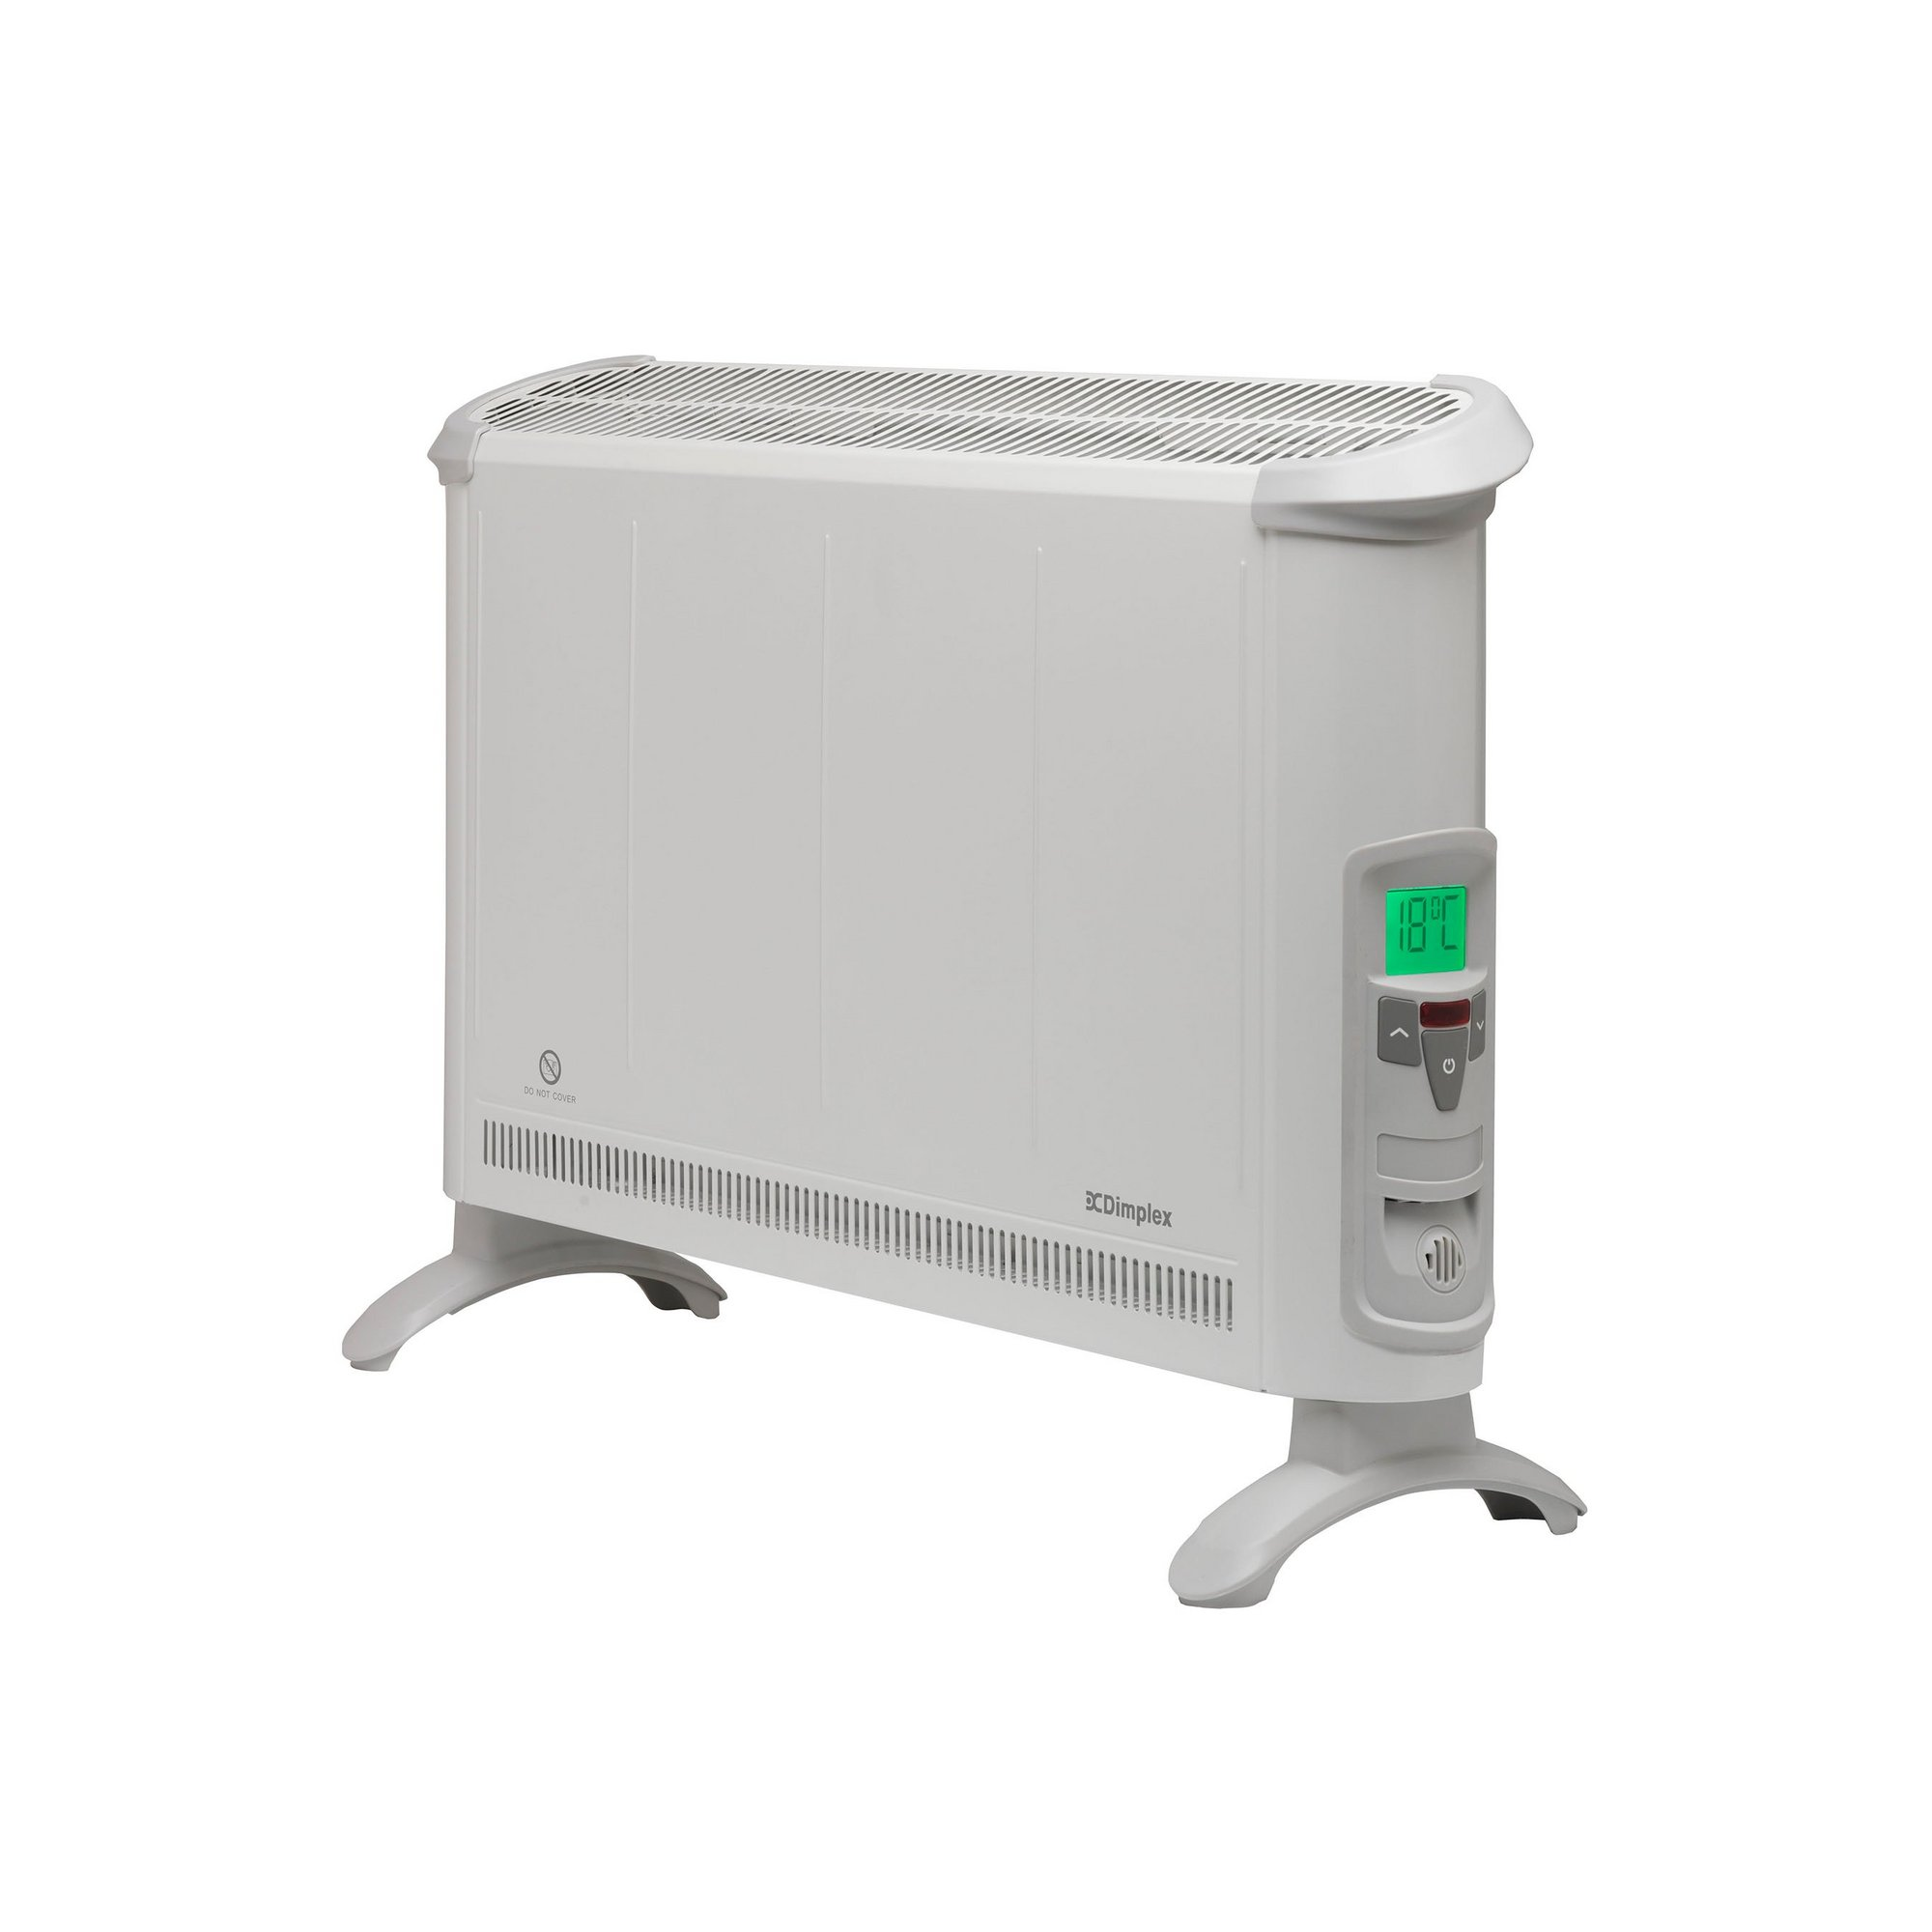 Image of Dimplex 40 Series 2KW Convector Heater